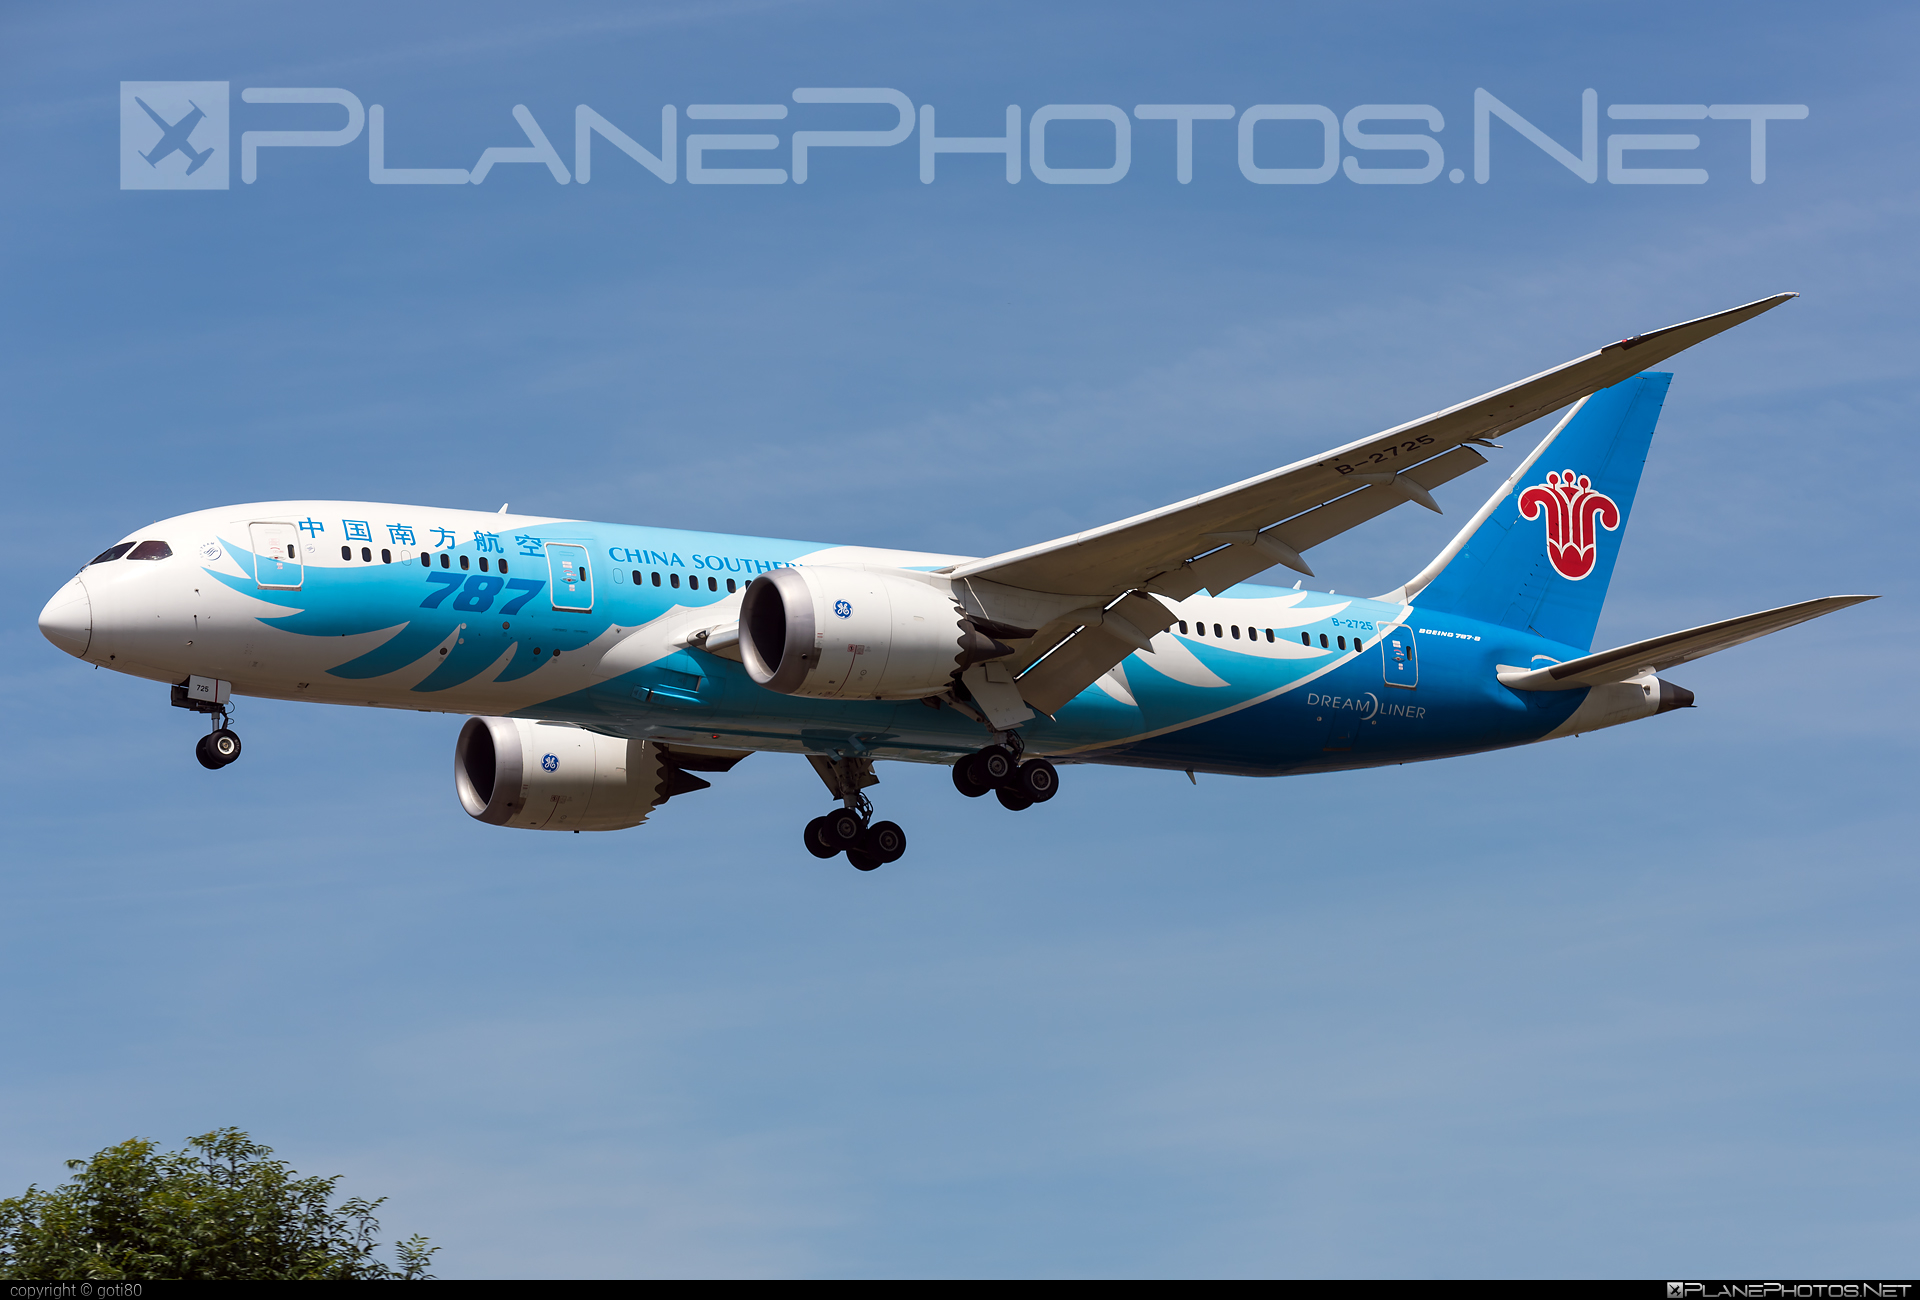 China Southern Airlines Boeing 787-8 Dreamliner - B-2725 #b787 #boeing #boeing787 #dreamliner